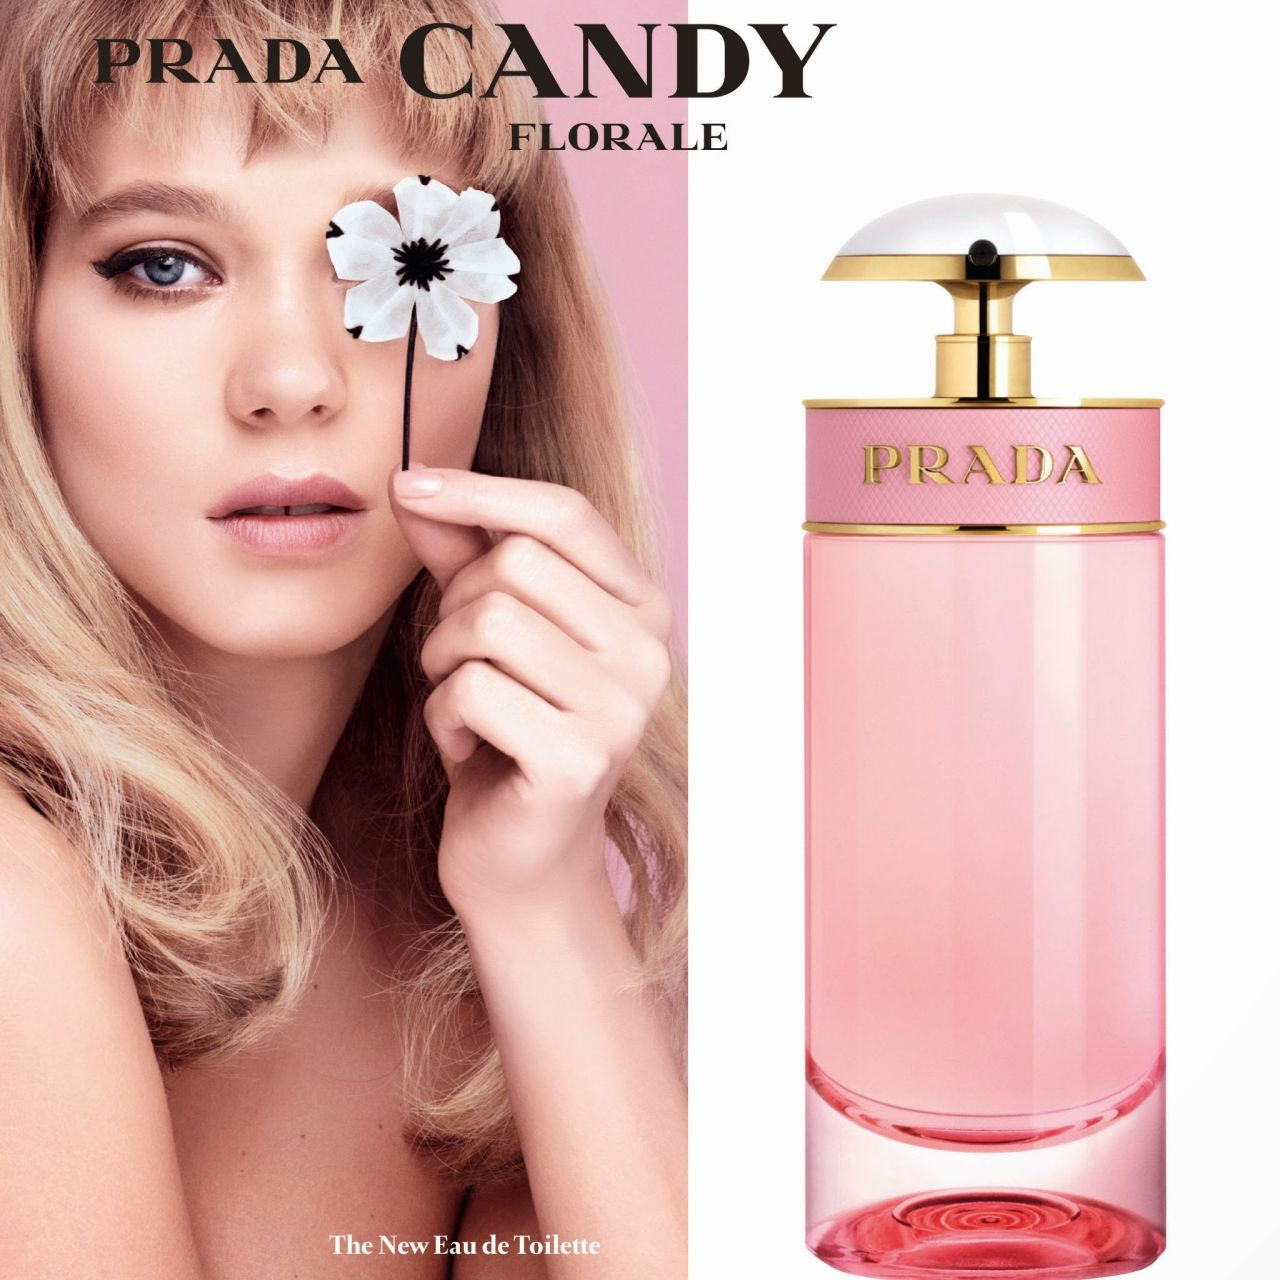 prada white replica - Prada Candy Florale perfume, floral powdery fragrance for women